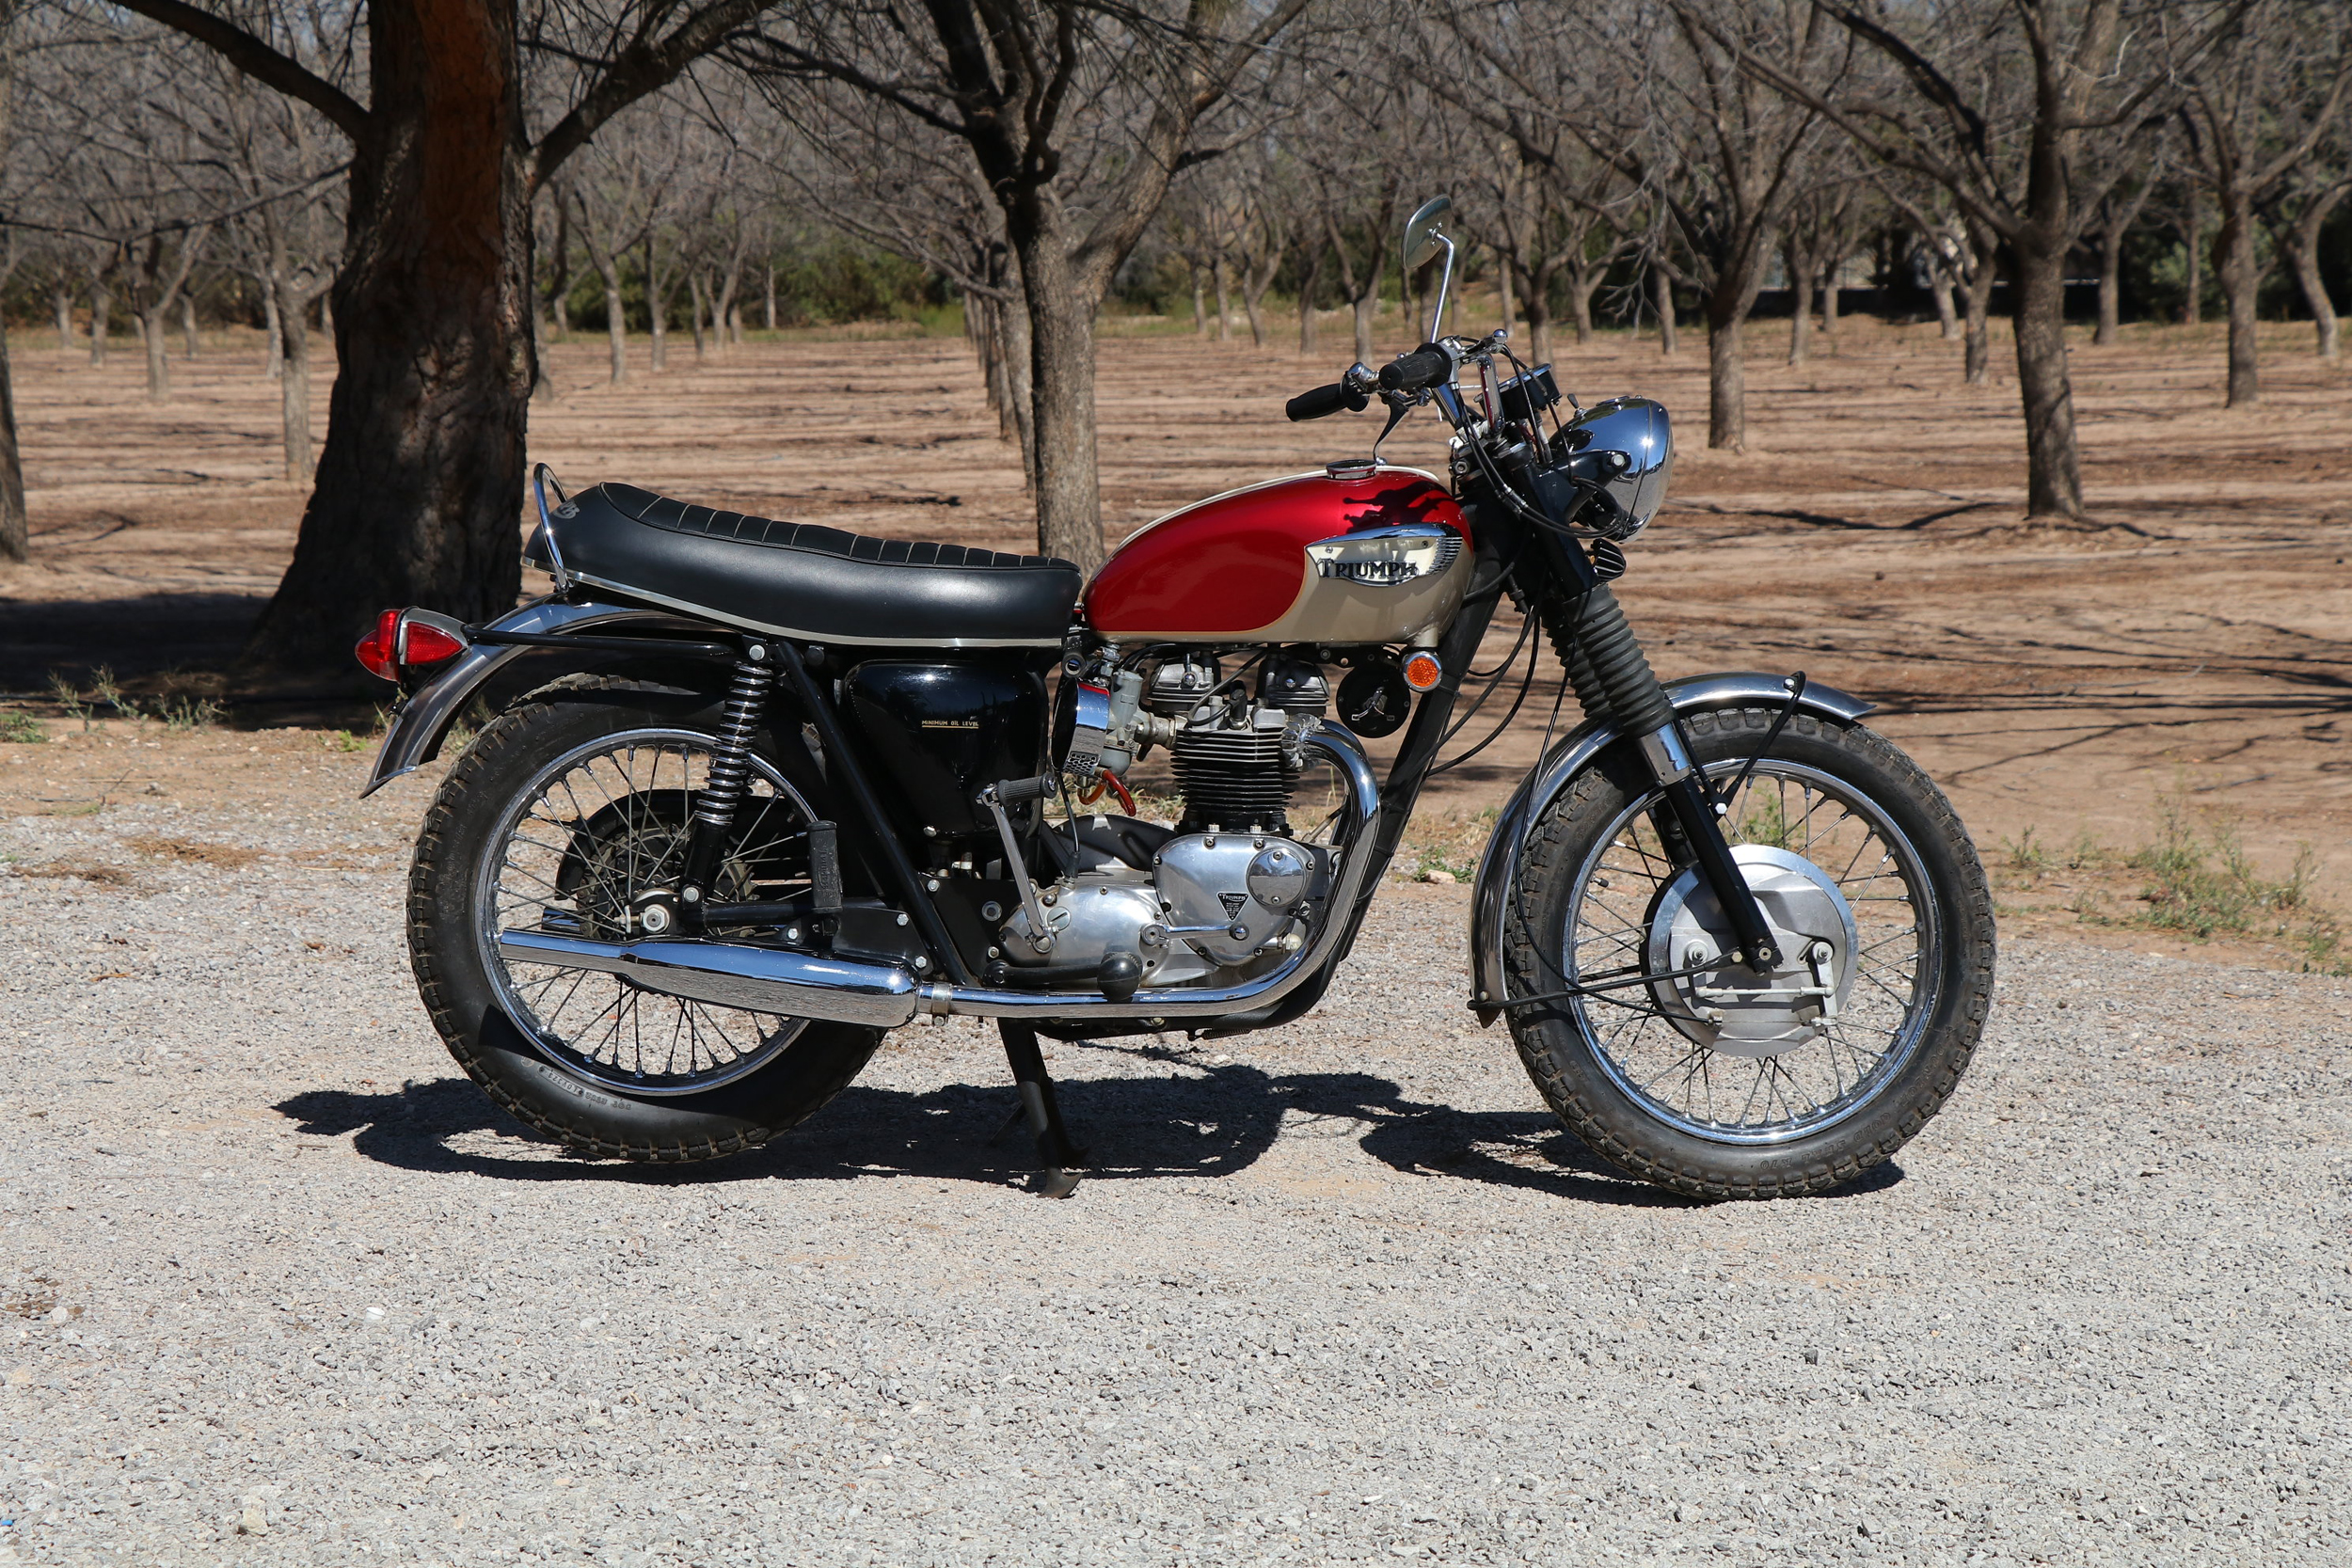 1968 Triumph Bonneville 650cc 4-Speed (Lot T266) - Mecum Auctions Houston